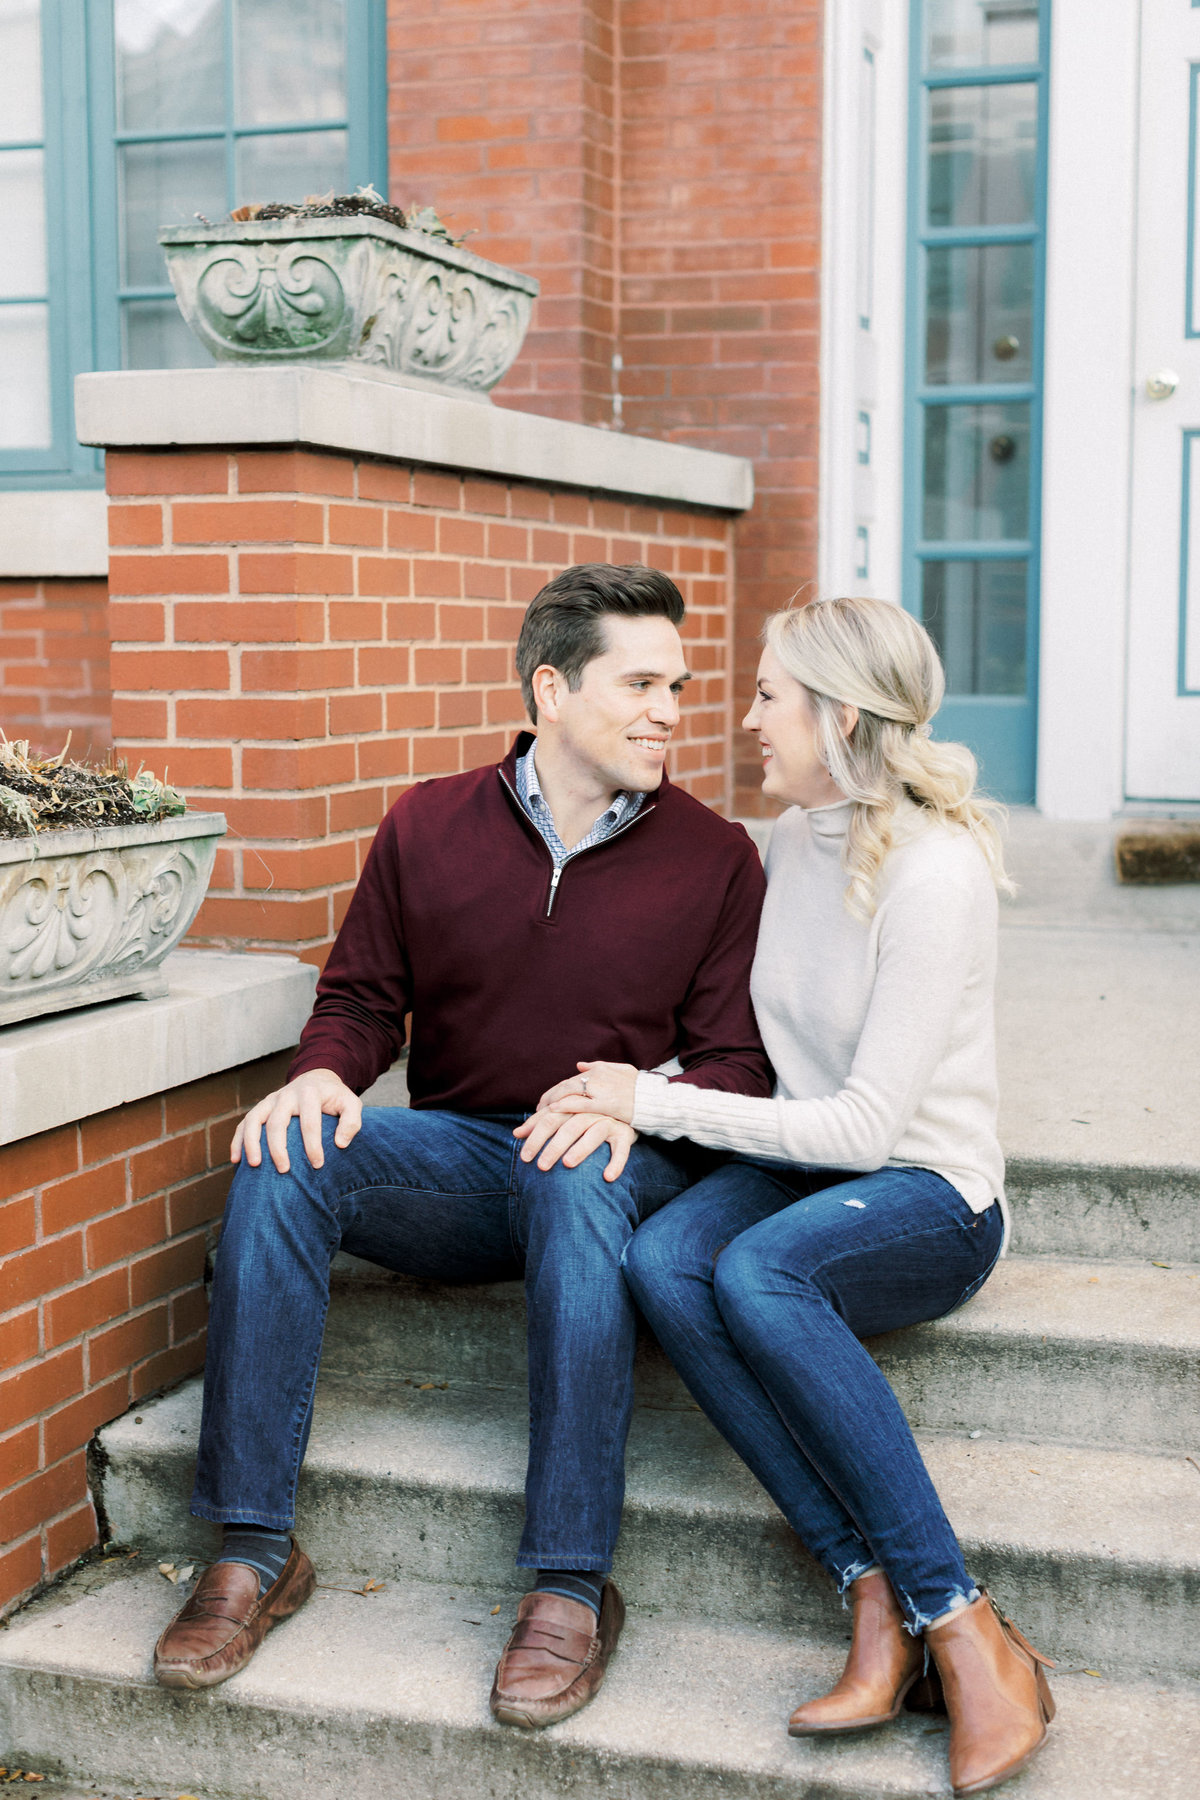 TiffaneyChildsPhotography-ChicagoWeddingPhotographer-AnneMarie+Connor-LincolnParkNatureBoardwalkEngagementSession-10